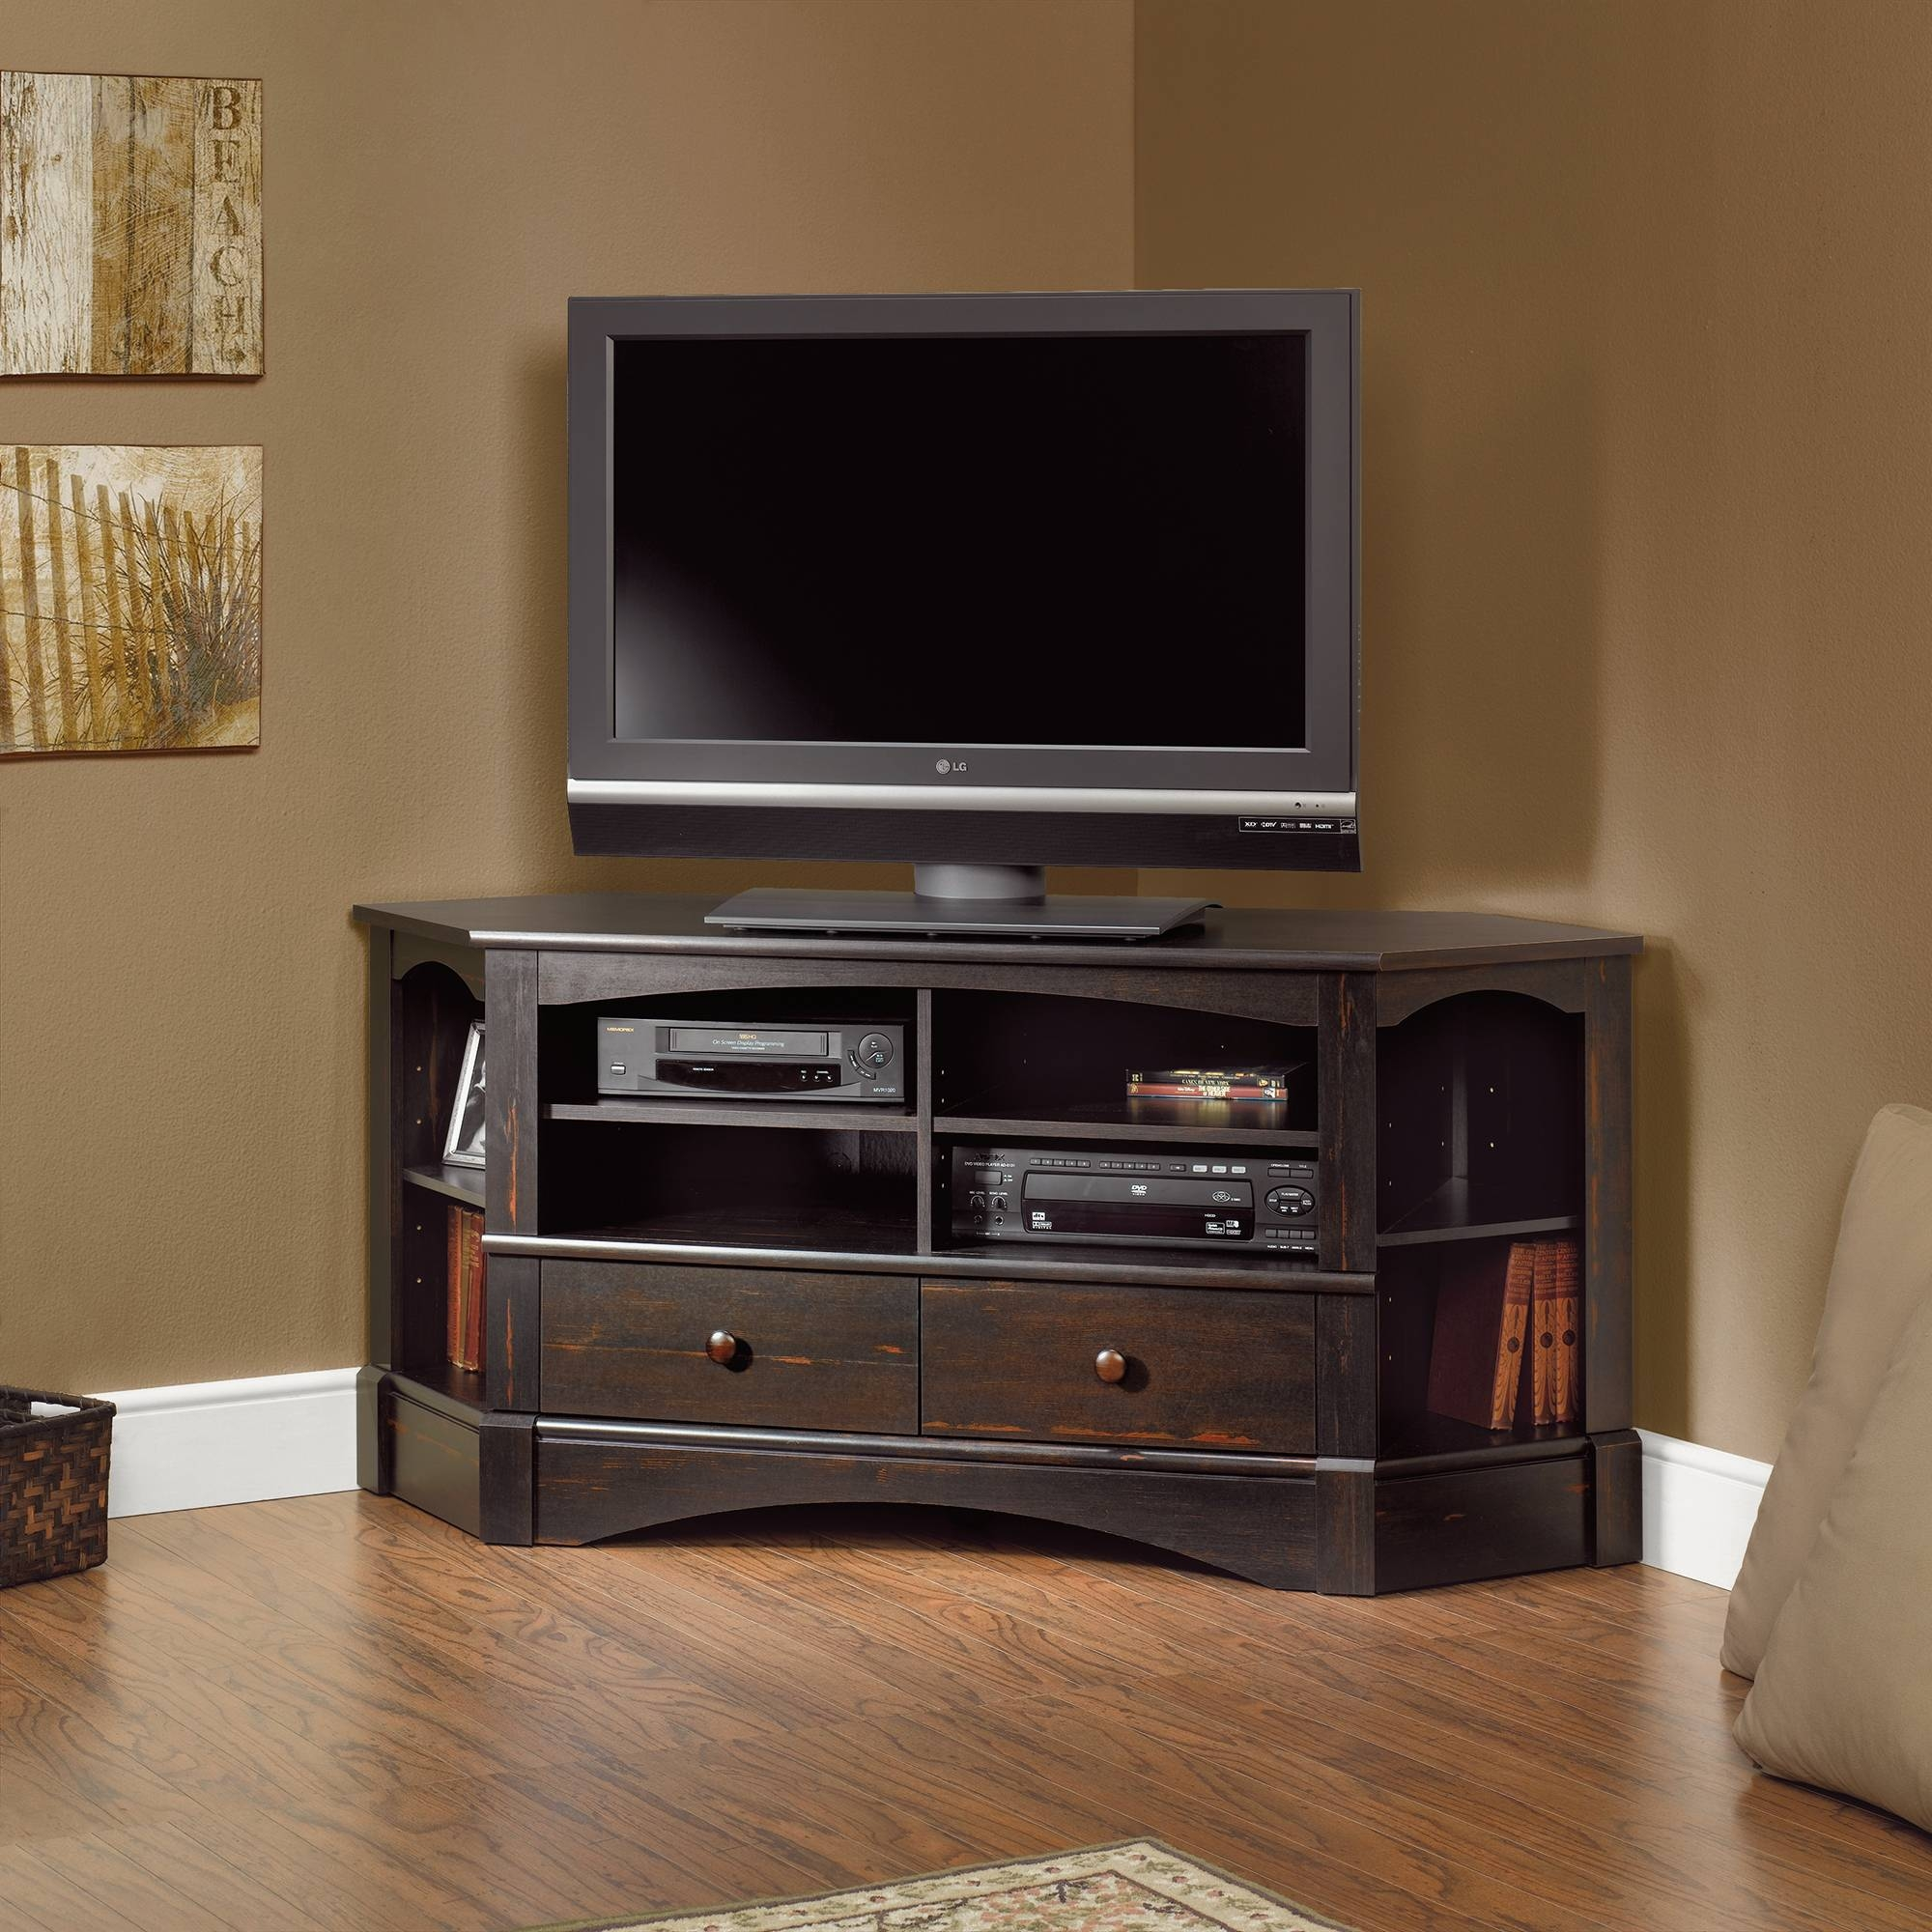 Furniture: Charming Brown Wooden Sauder Tv Stand With Silver intended for Silver Corner Tv Stands (Image 2 of 15)